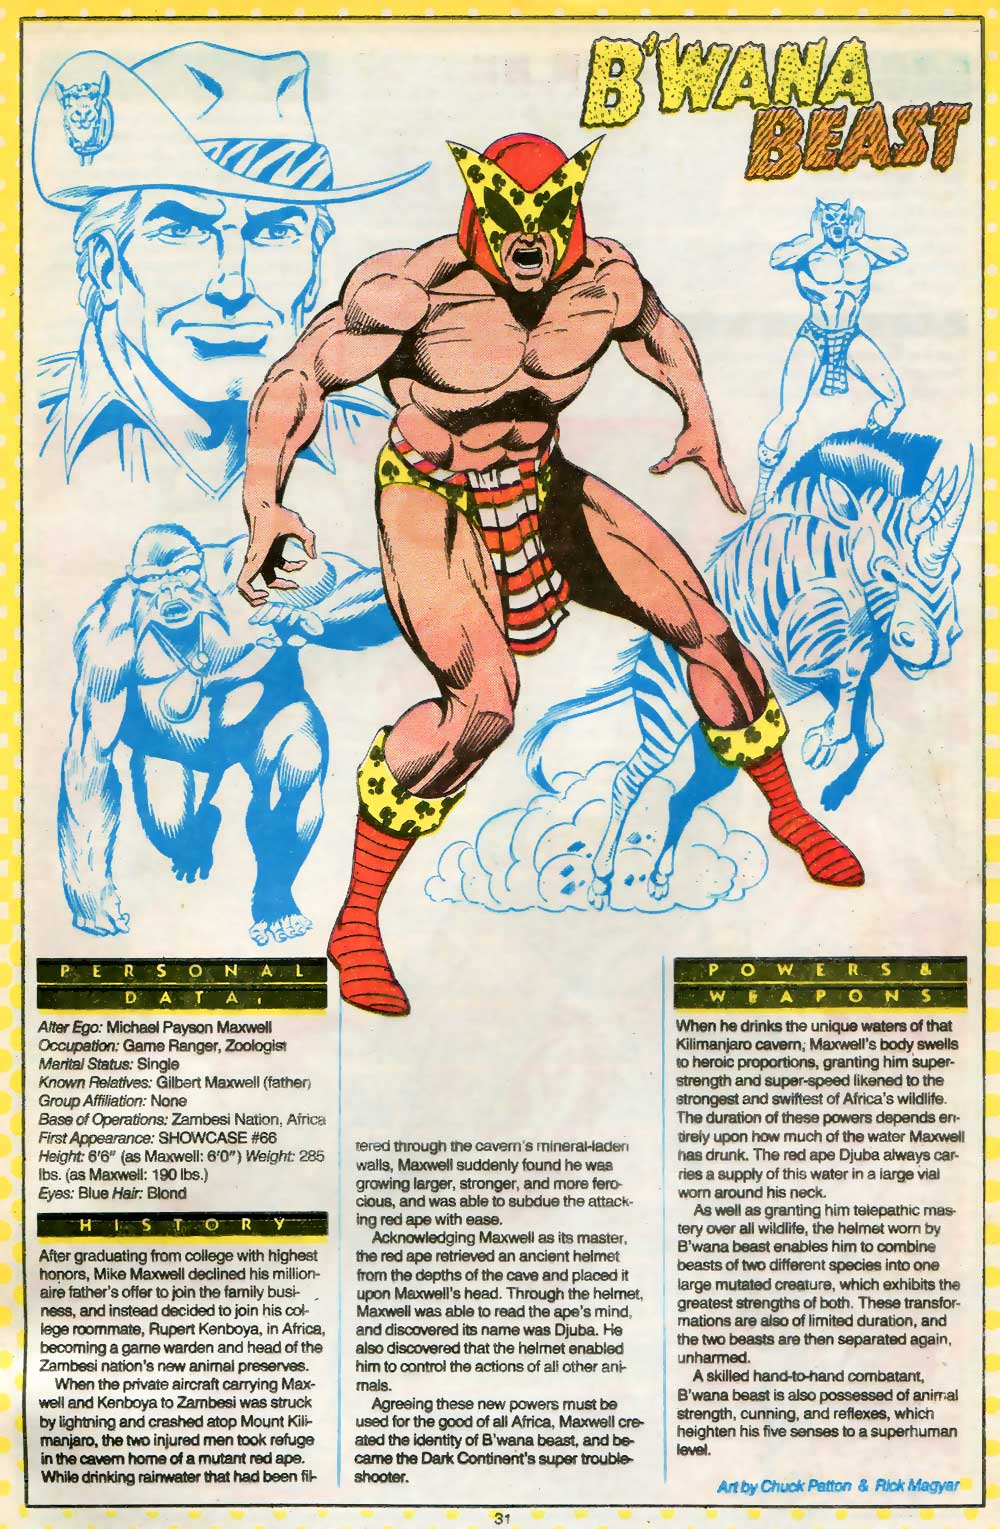 B'wana Beast in Who's Who 1985